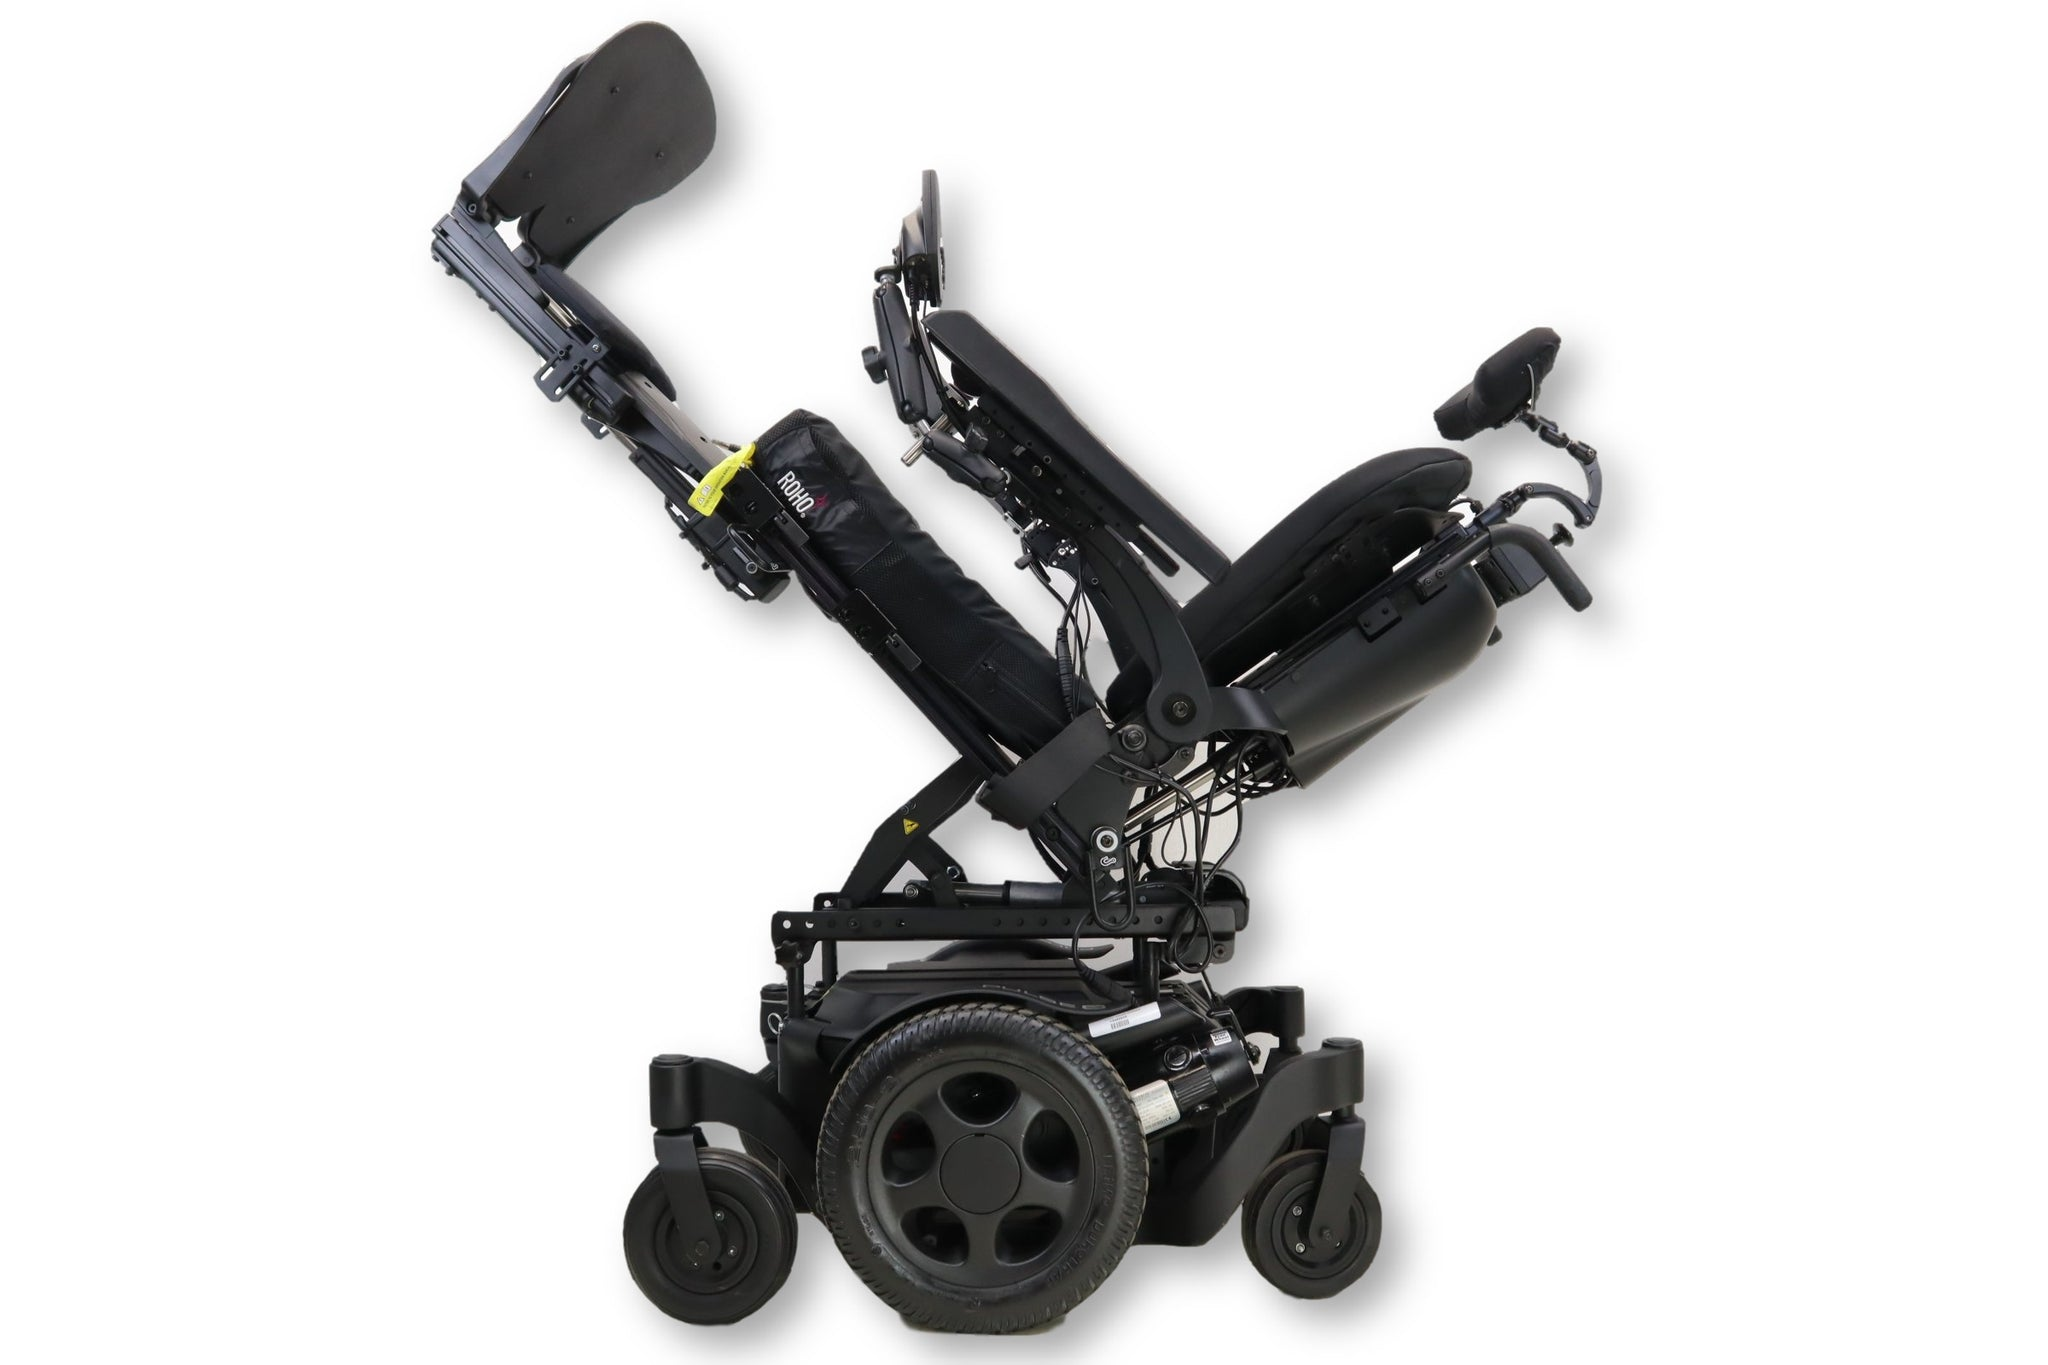 Quickie Pulse 6 Power Wheelchair With Tilt, Recline, & Power Legs